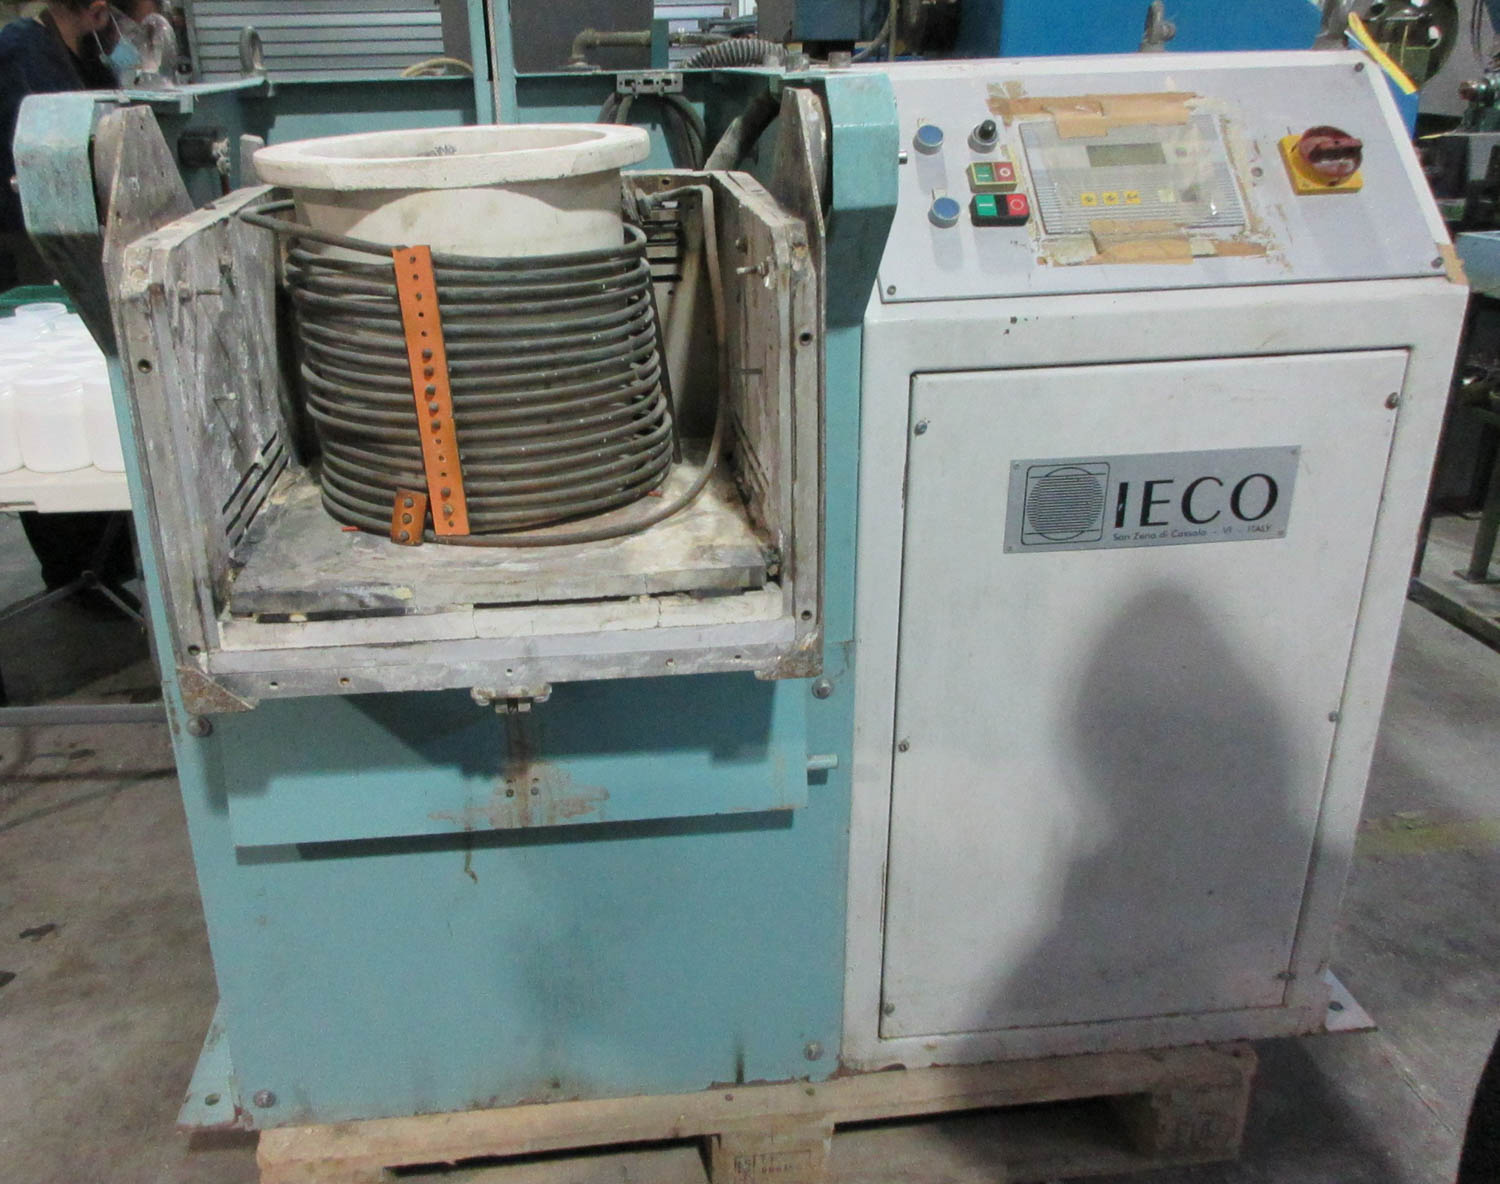 IECO CASTING MACHINE; 28 CM DIAMETER POTS [A#216][LOCATED IN Kiryat Malachi]